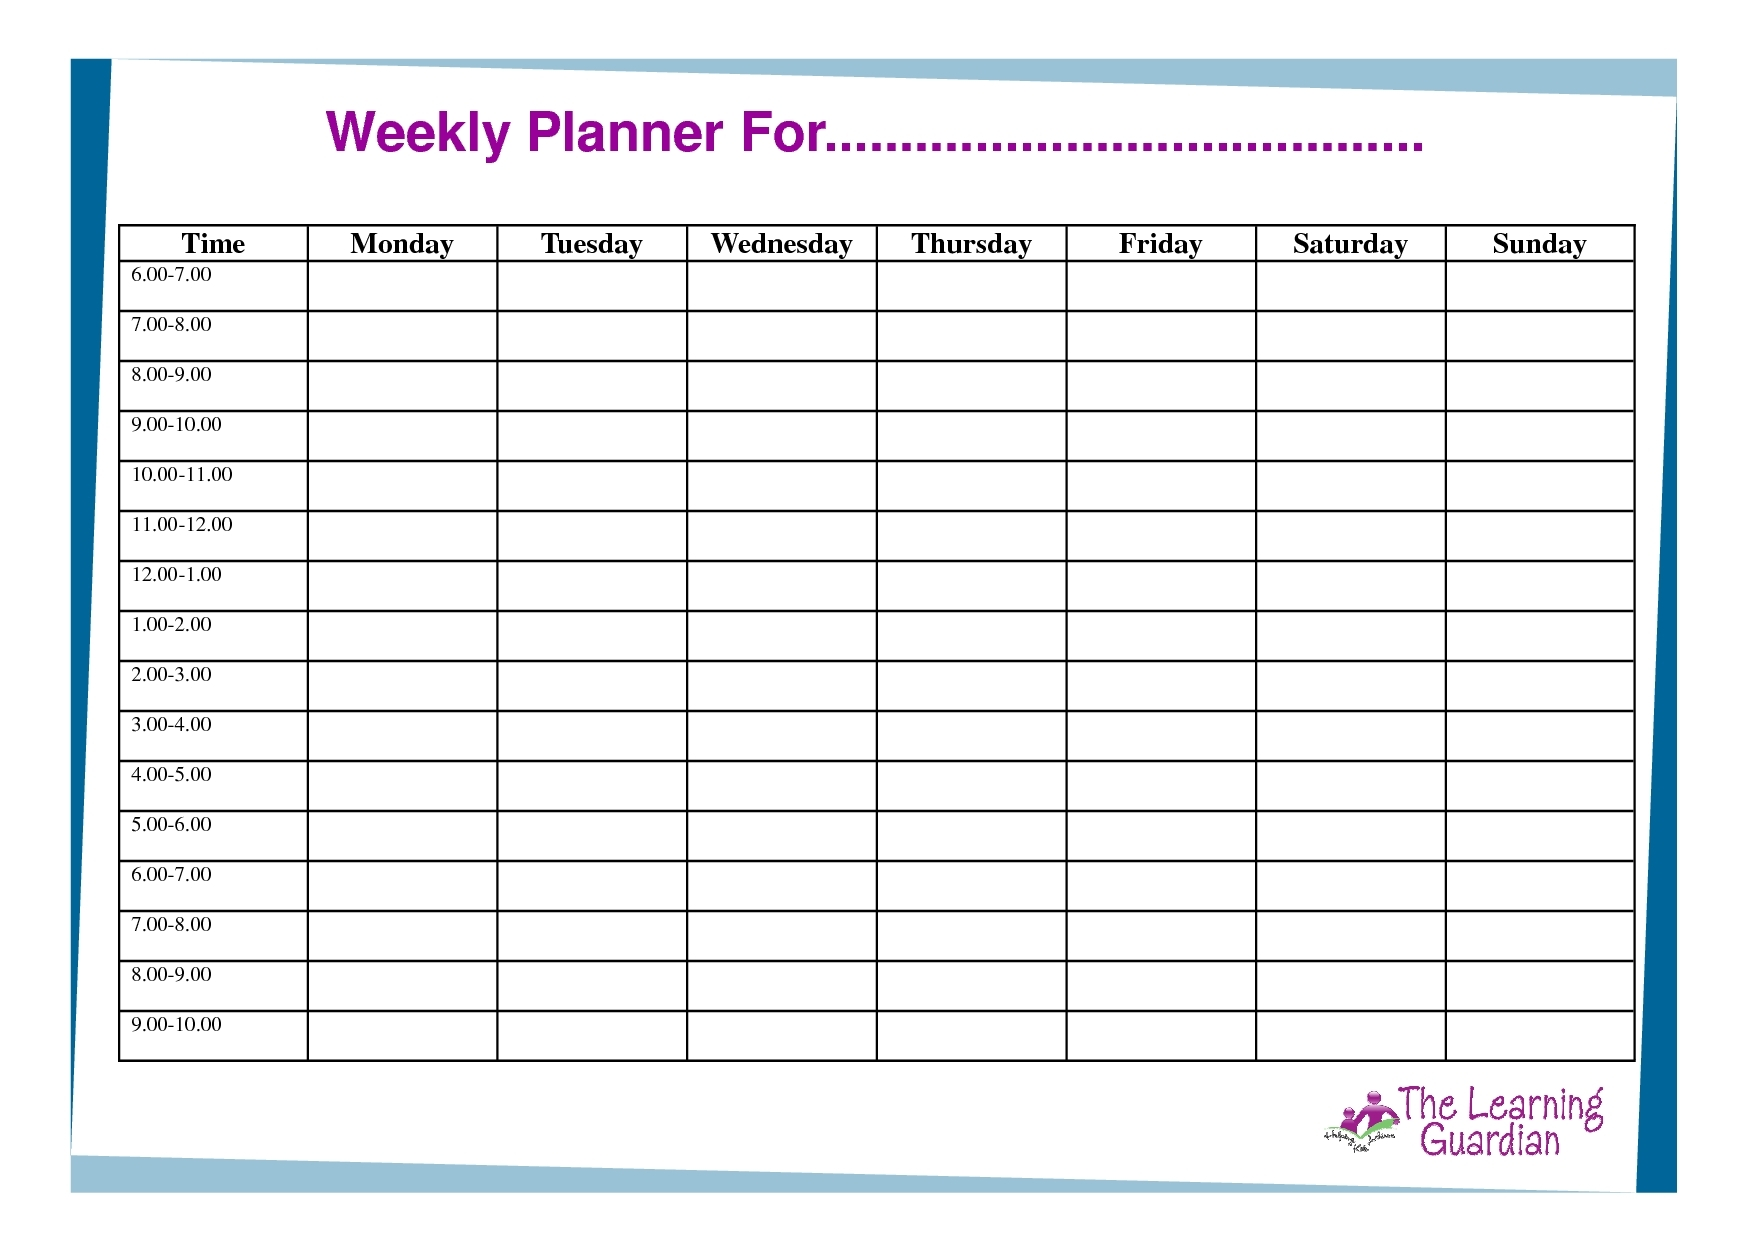 Free Printable Calendar With Time Slots | Ten Free Printable Calendar 2020-2021